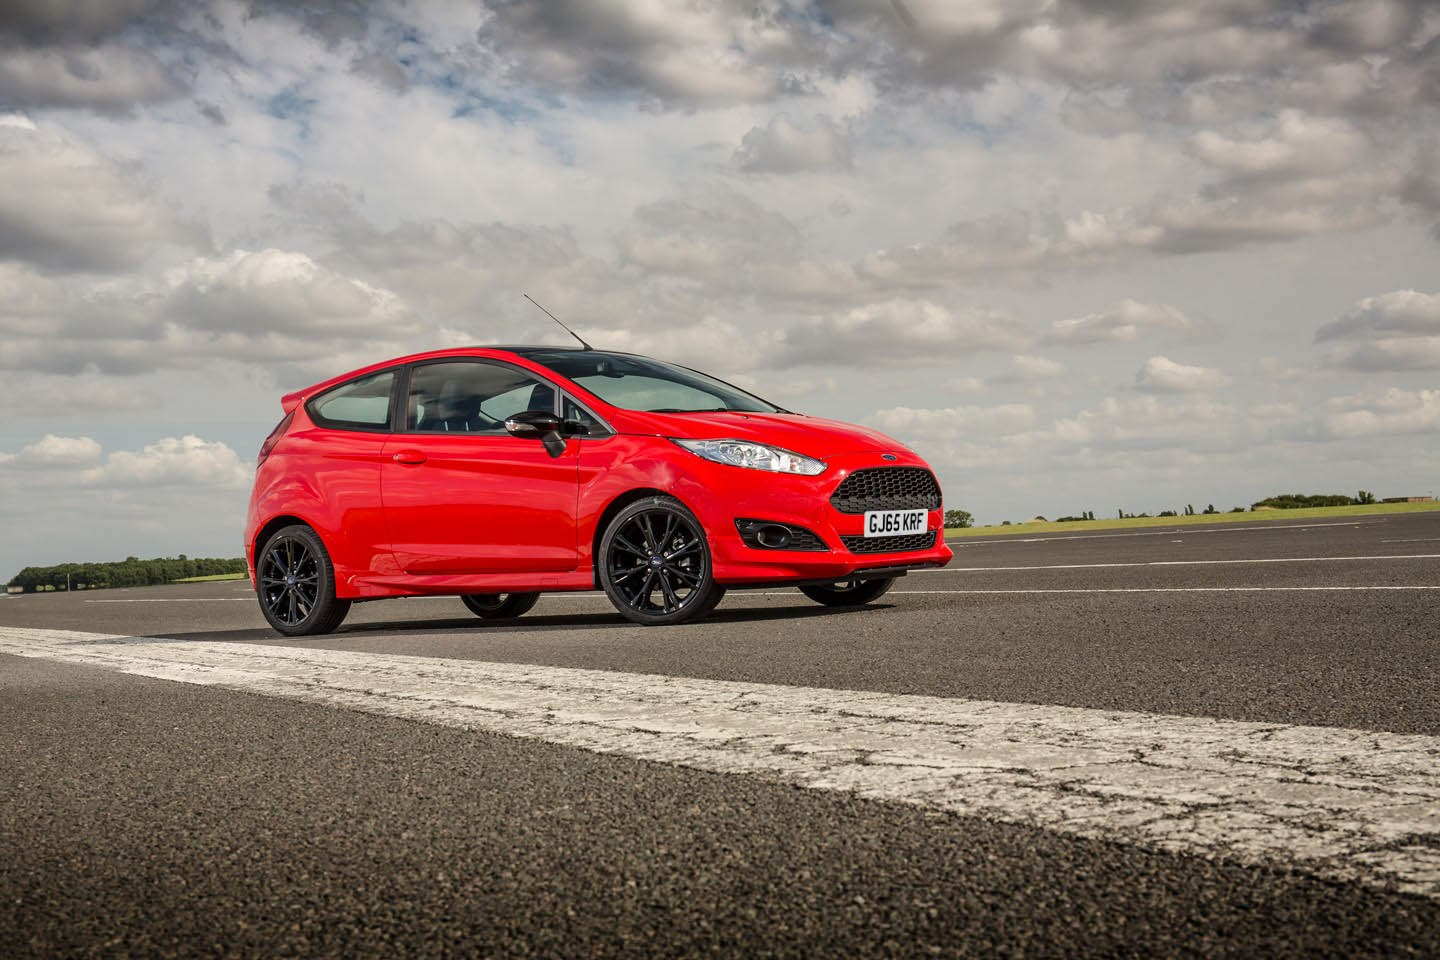 UK 2015 car sales analysis: winners and losers by CAR Magazine